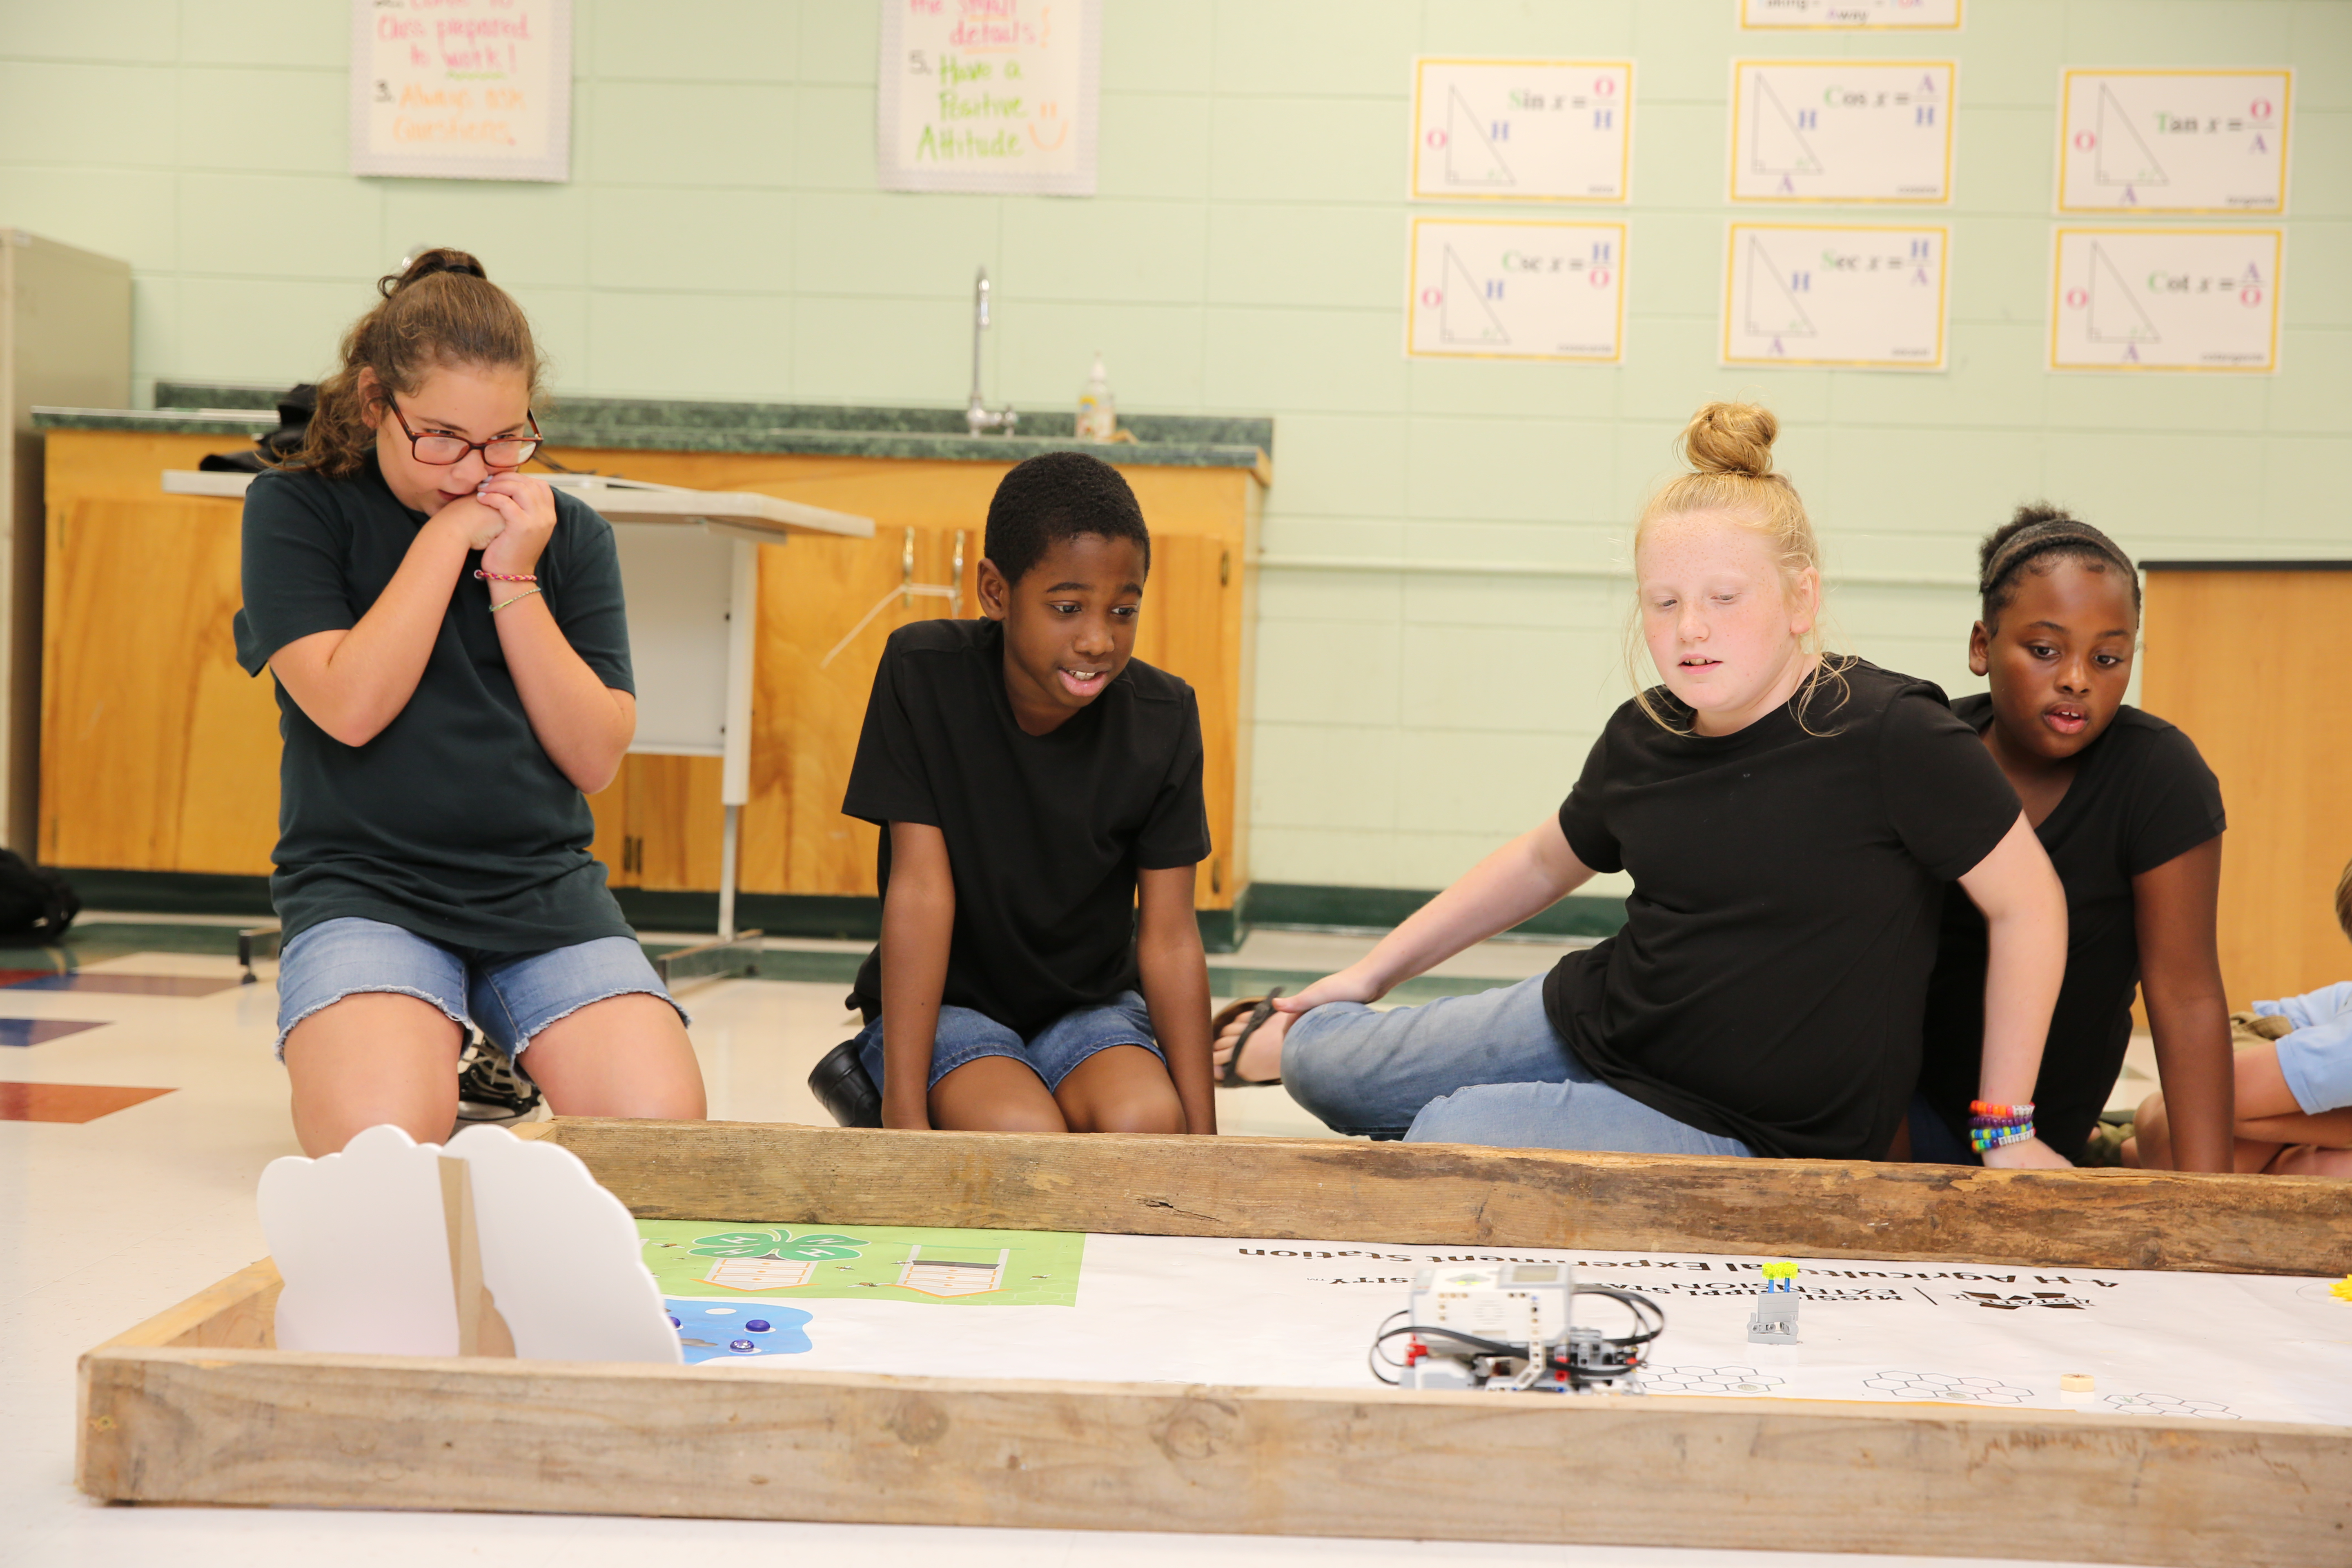 Three girls and one boy wearing black shirts looking anxious as they compete in a robotics competition.